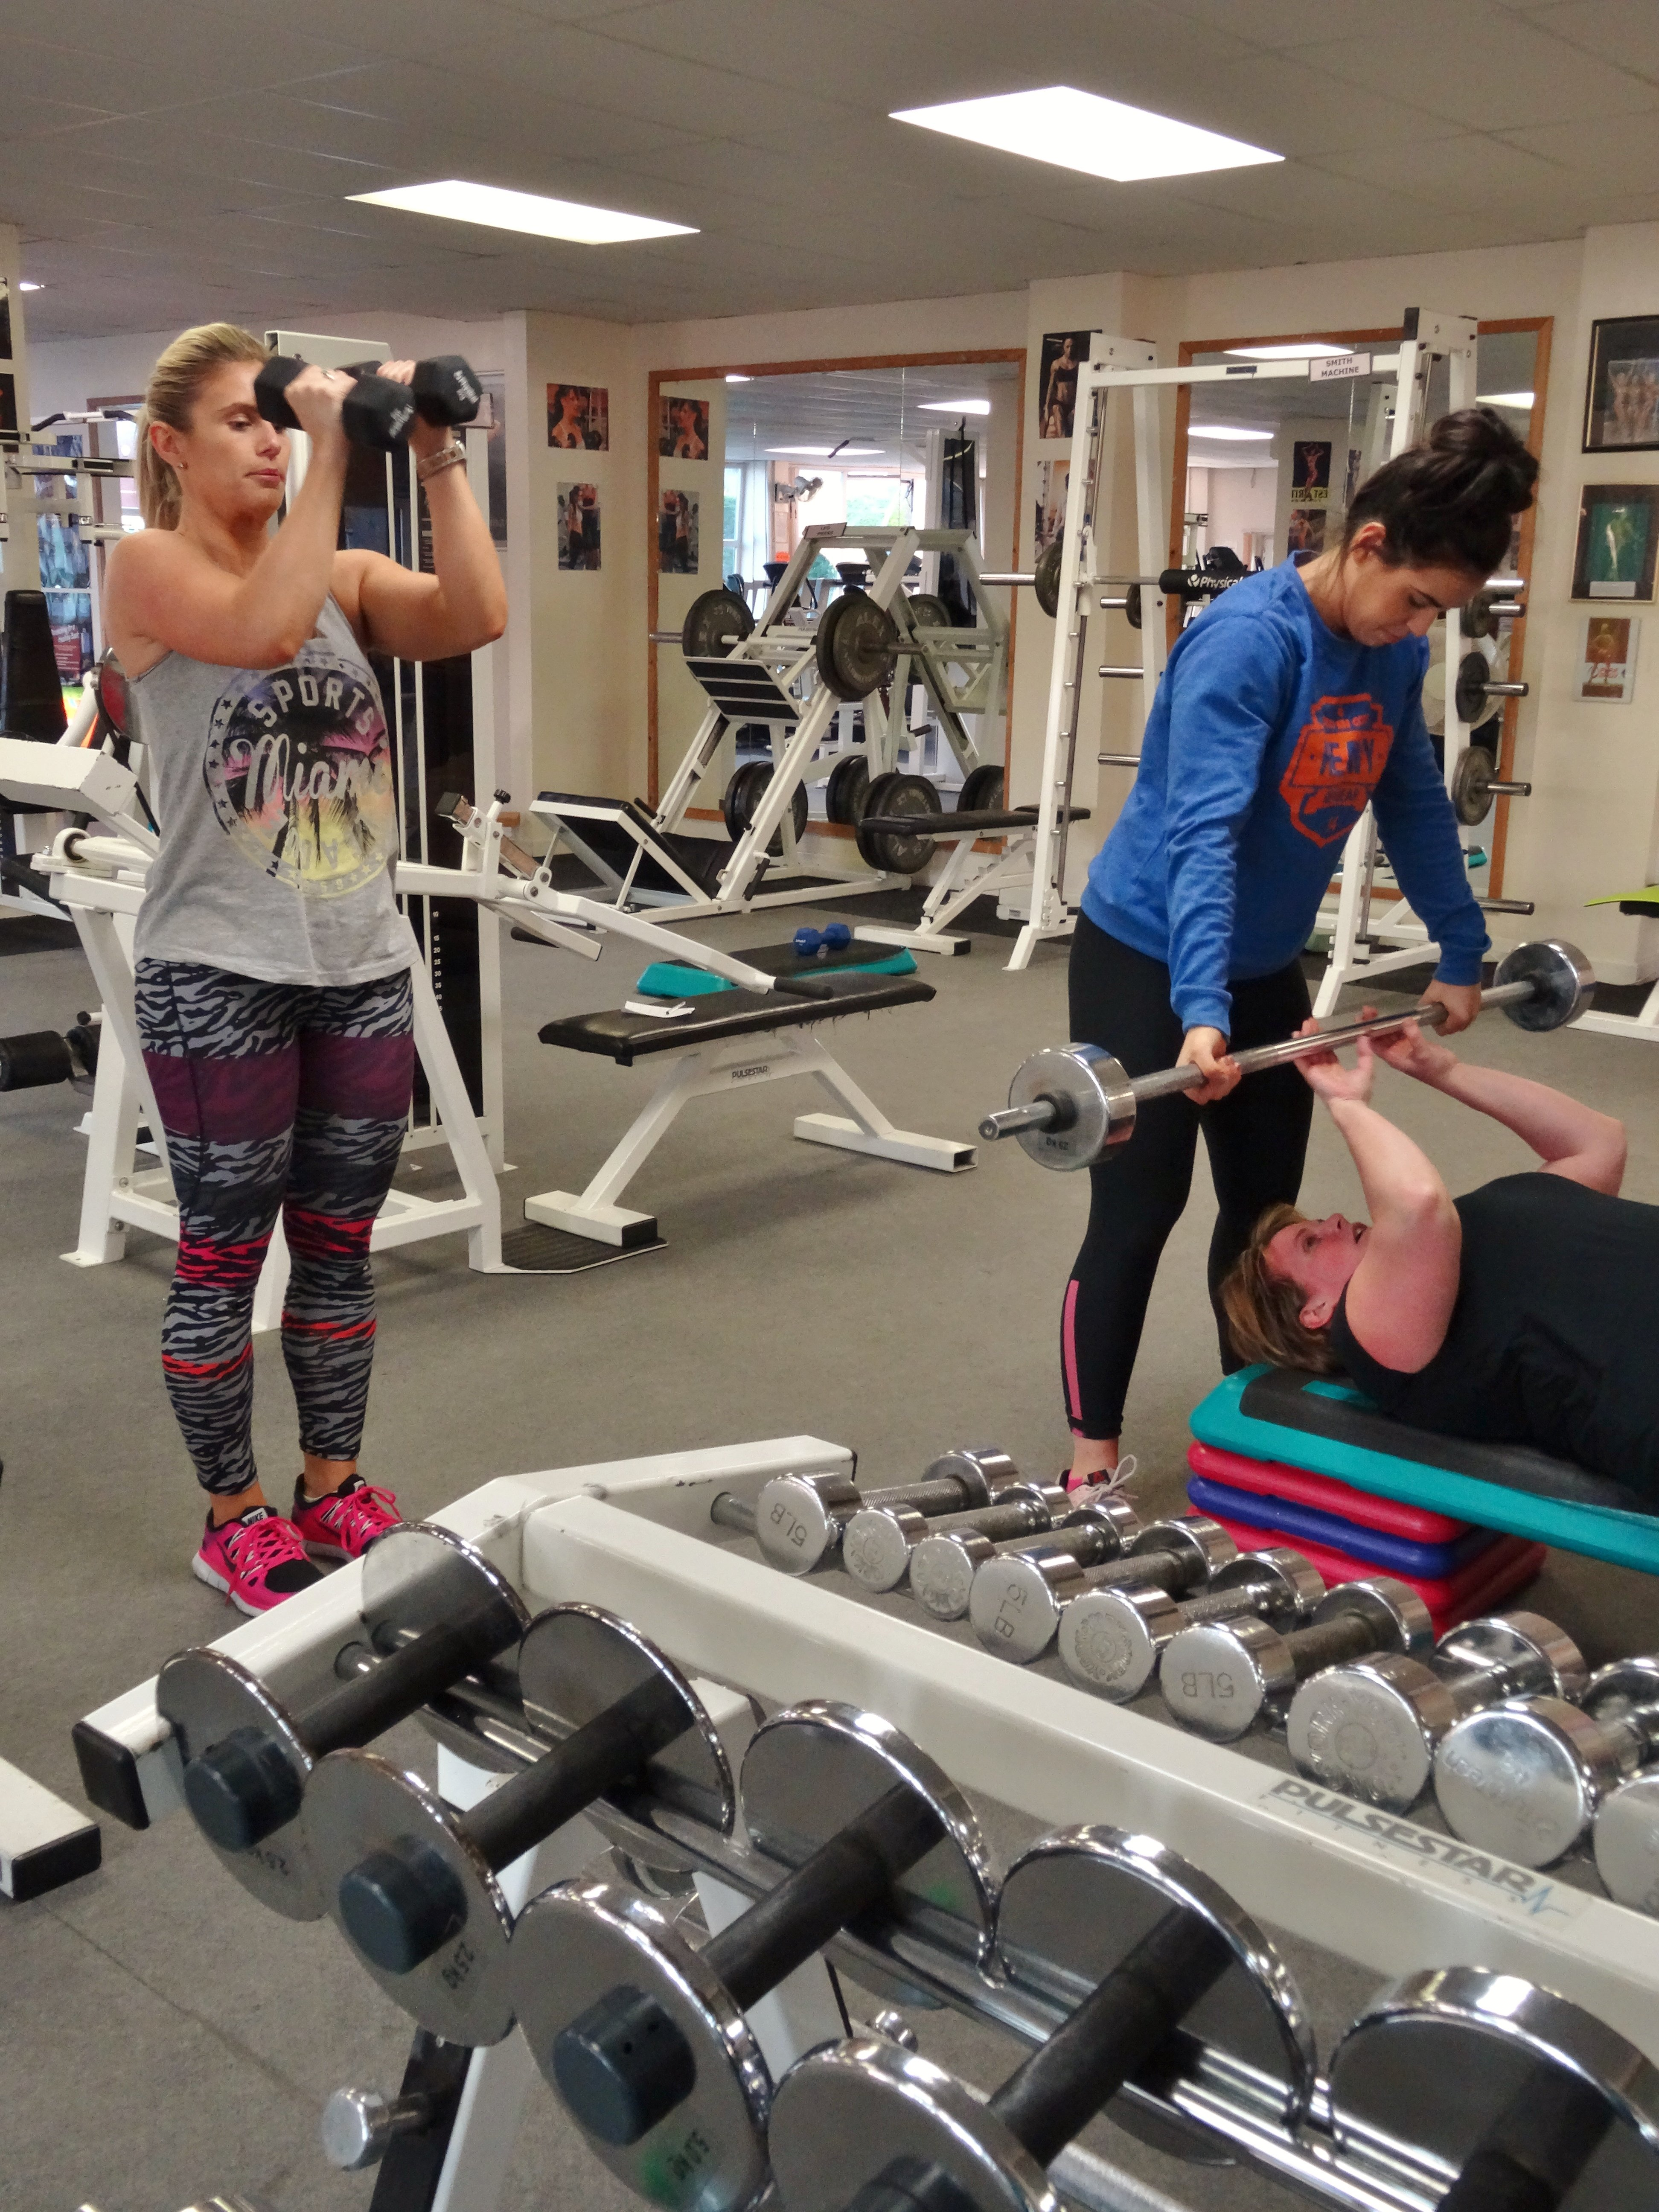 certified trainer assisting people at the gym